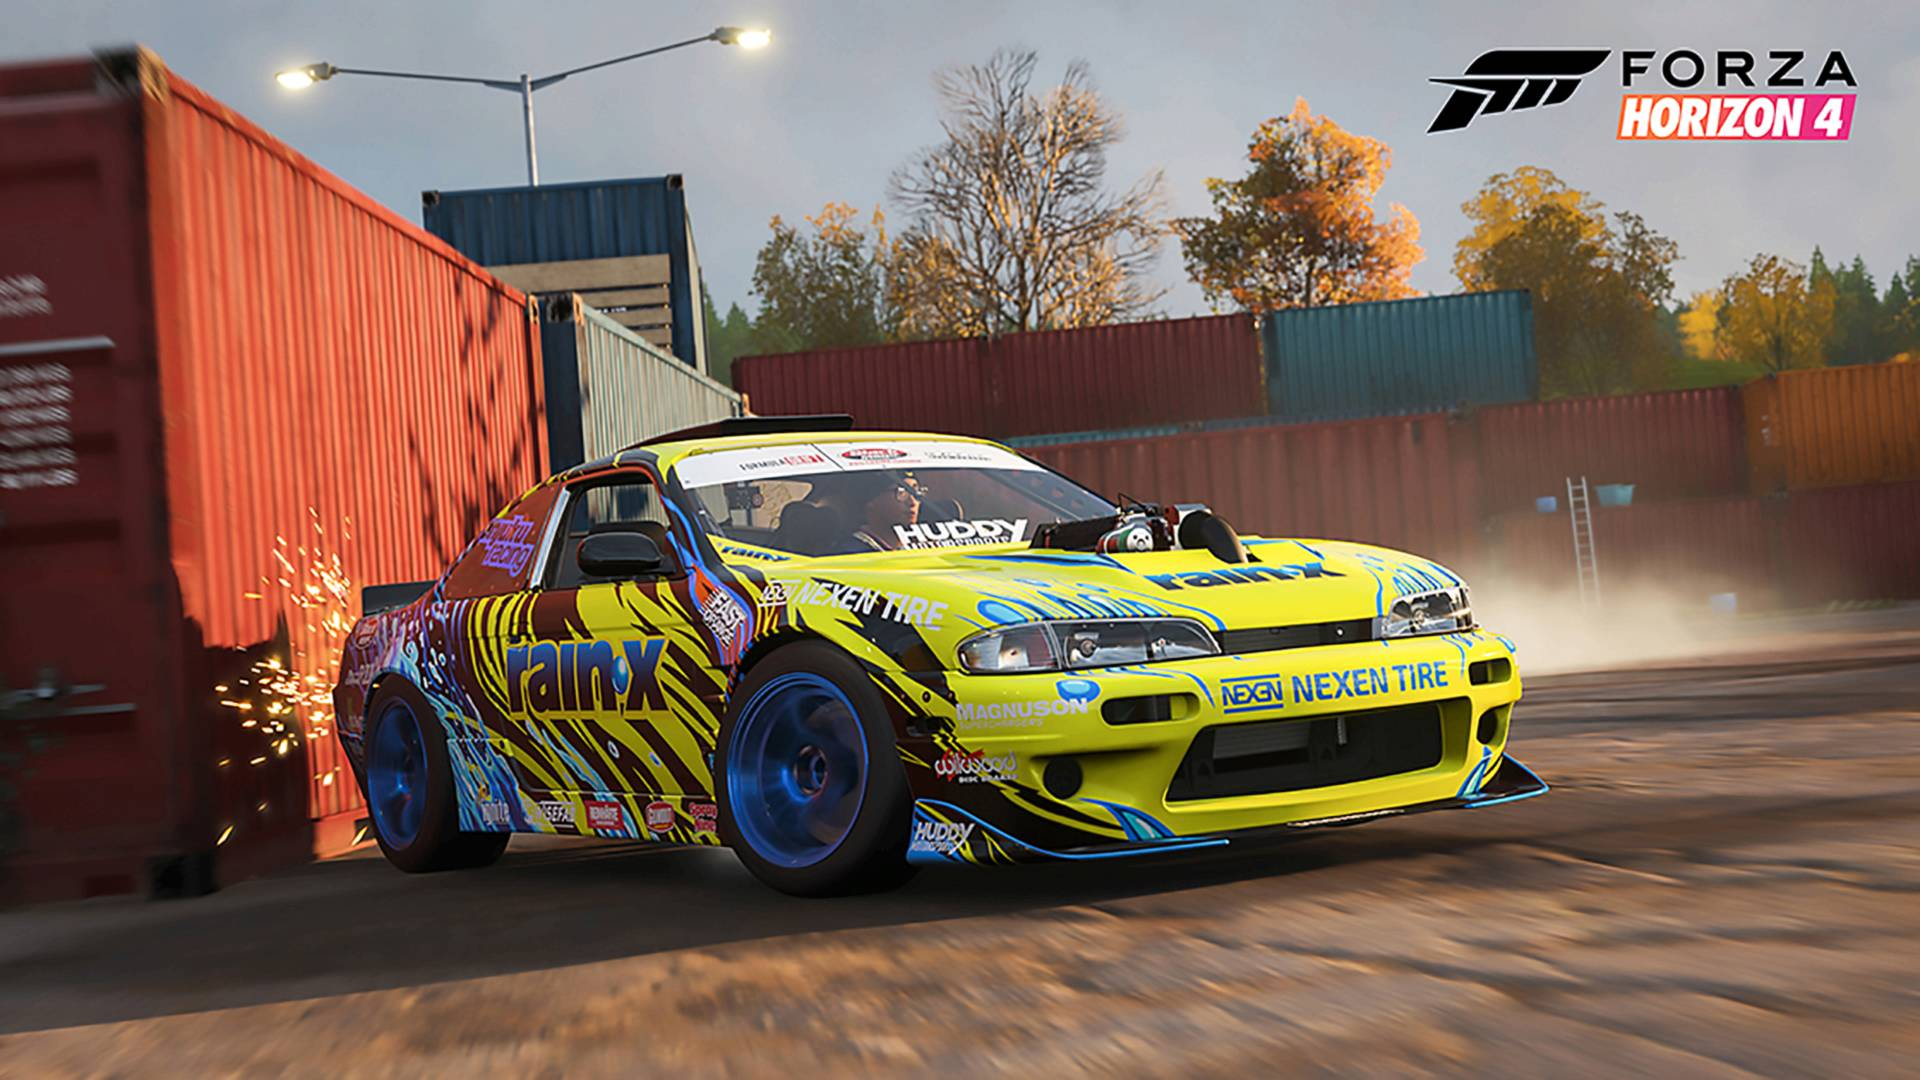 'Forza Horizon 4' - Accelerating Away From The Competition